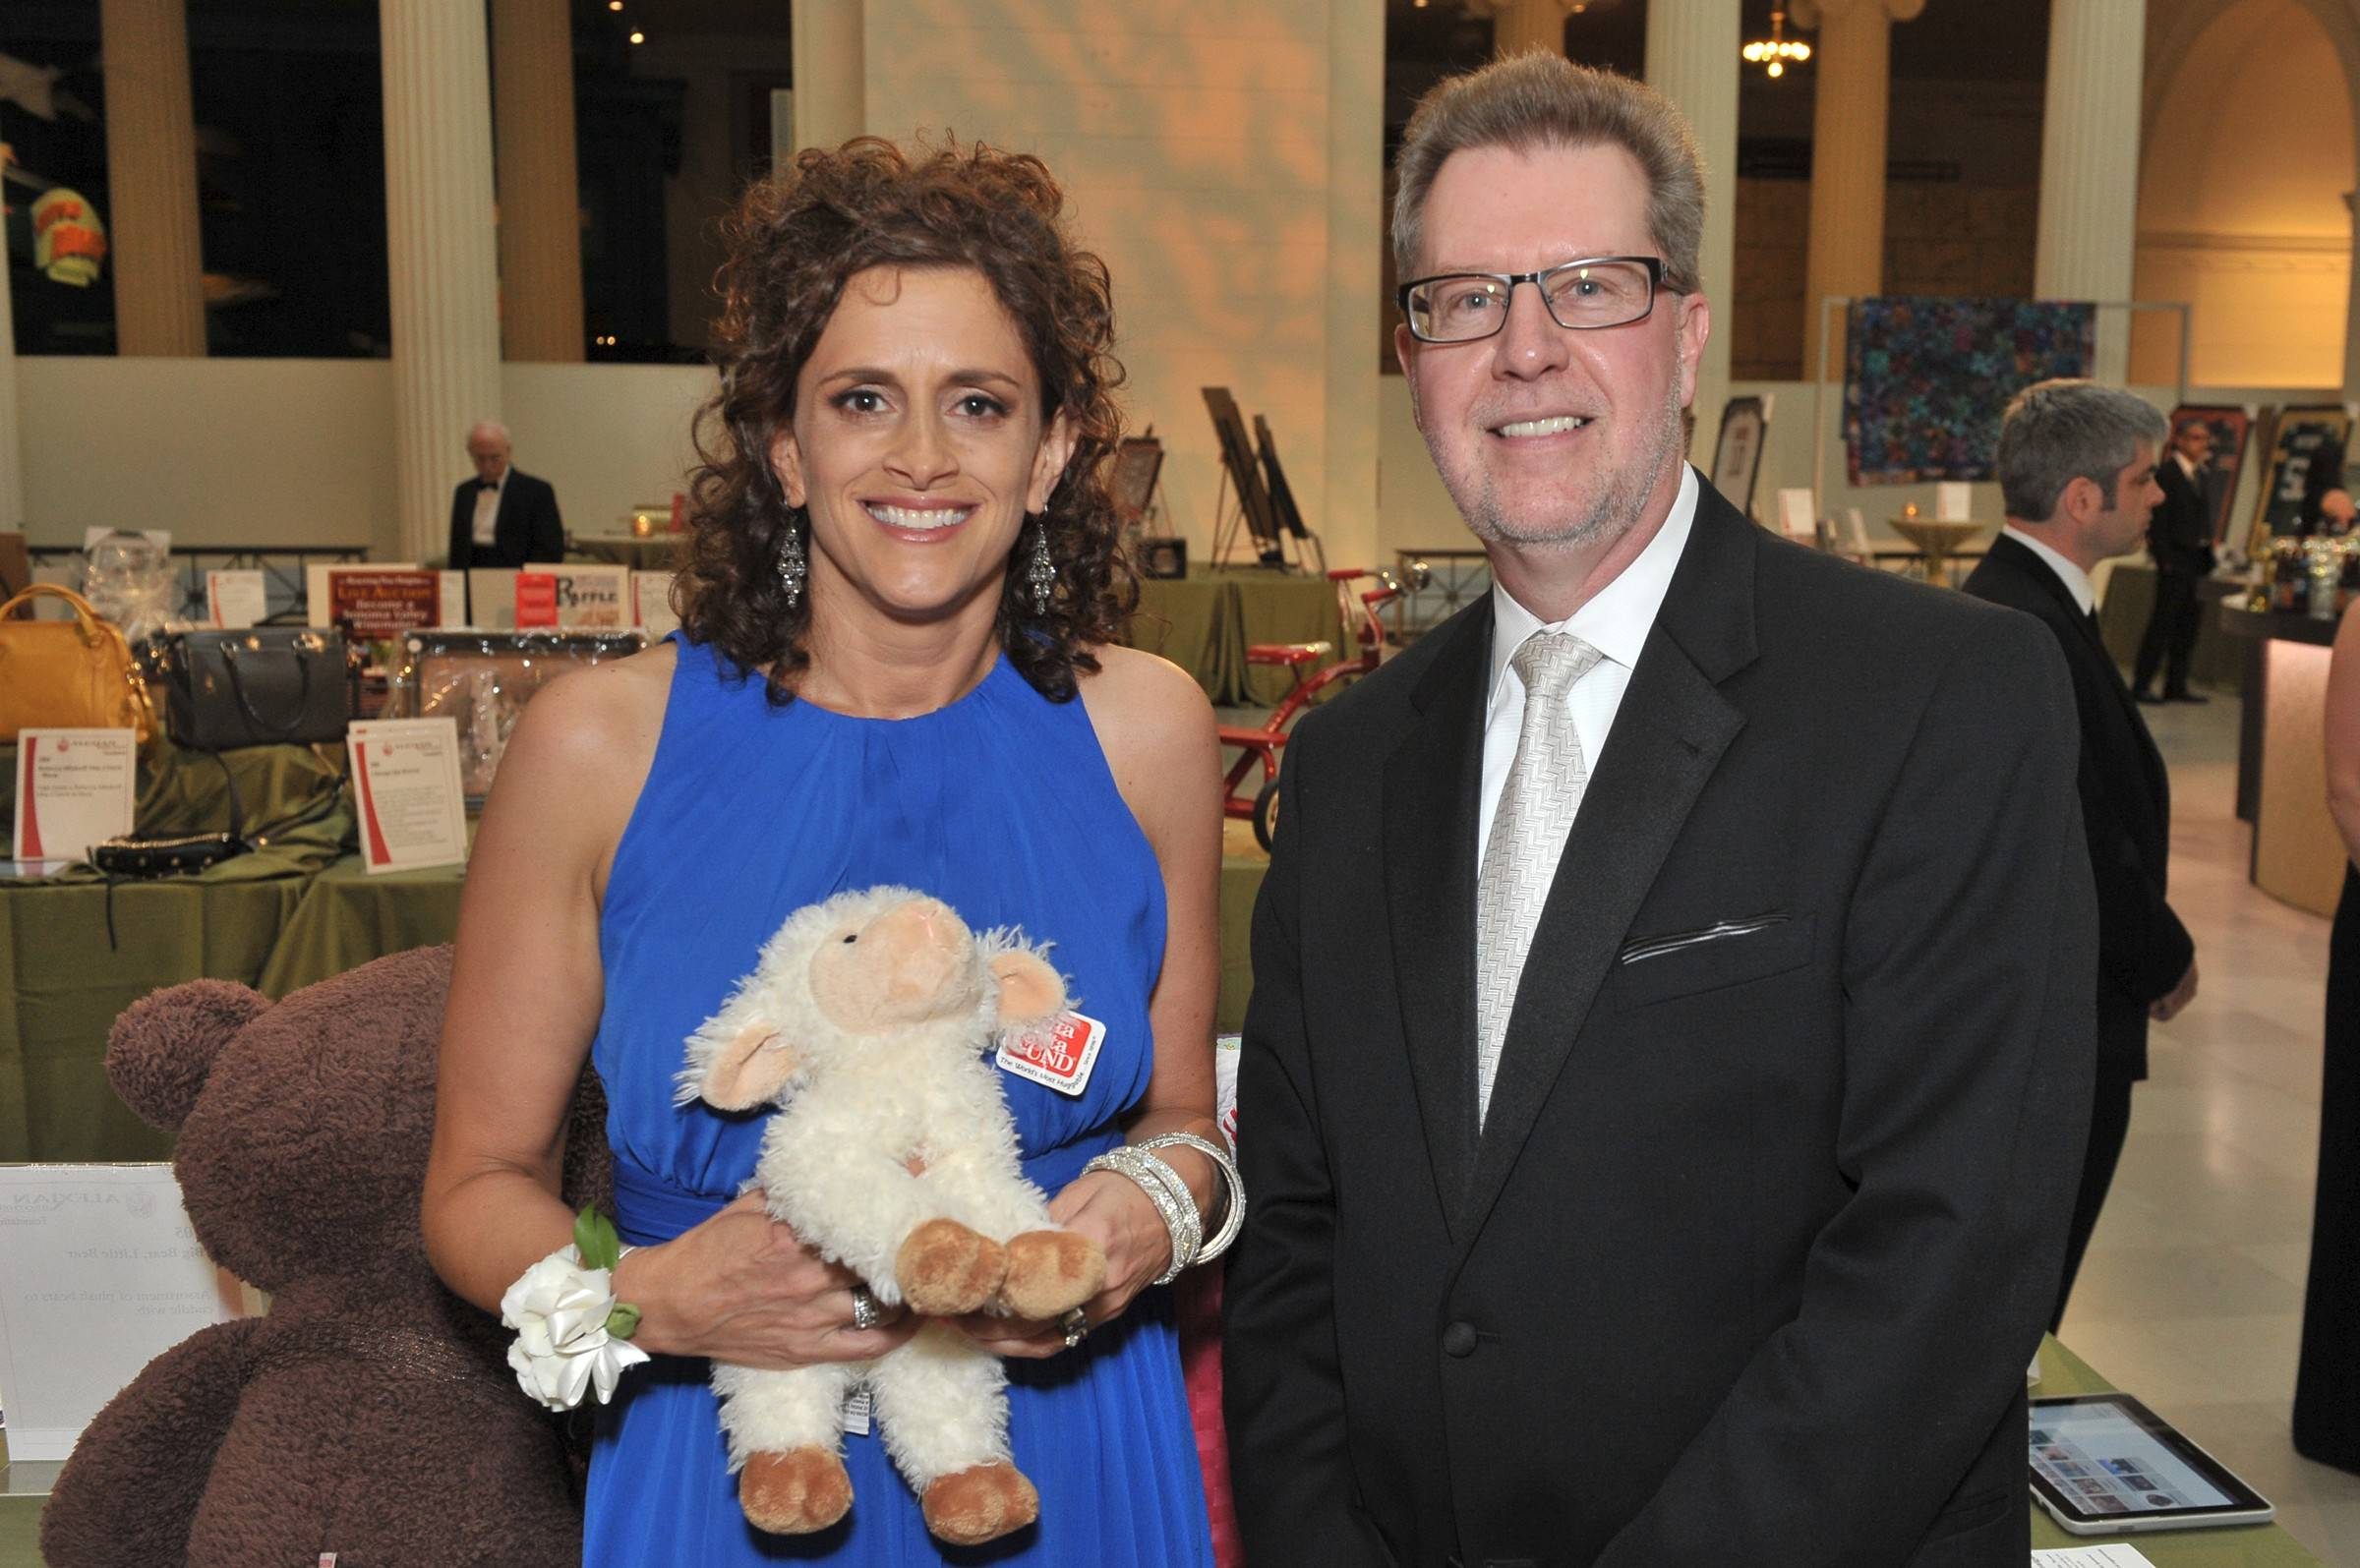 Melanie Furlan and Mark Frey, president and CEO of Alexian Brothers Health System, at the silent auction during the 28th Annual Alexian Brothers Ball de Fleur.